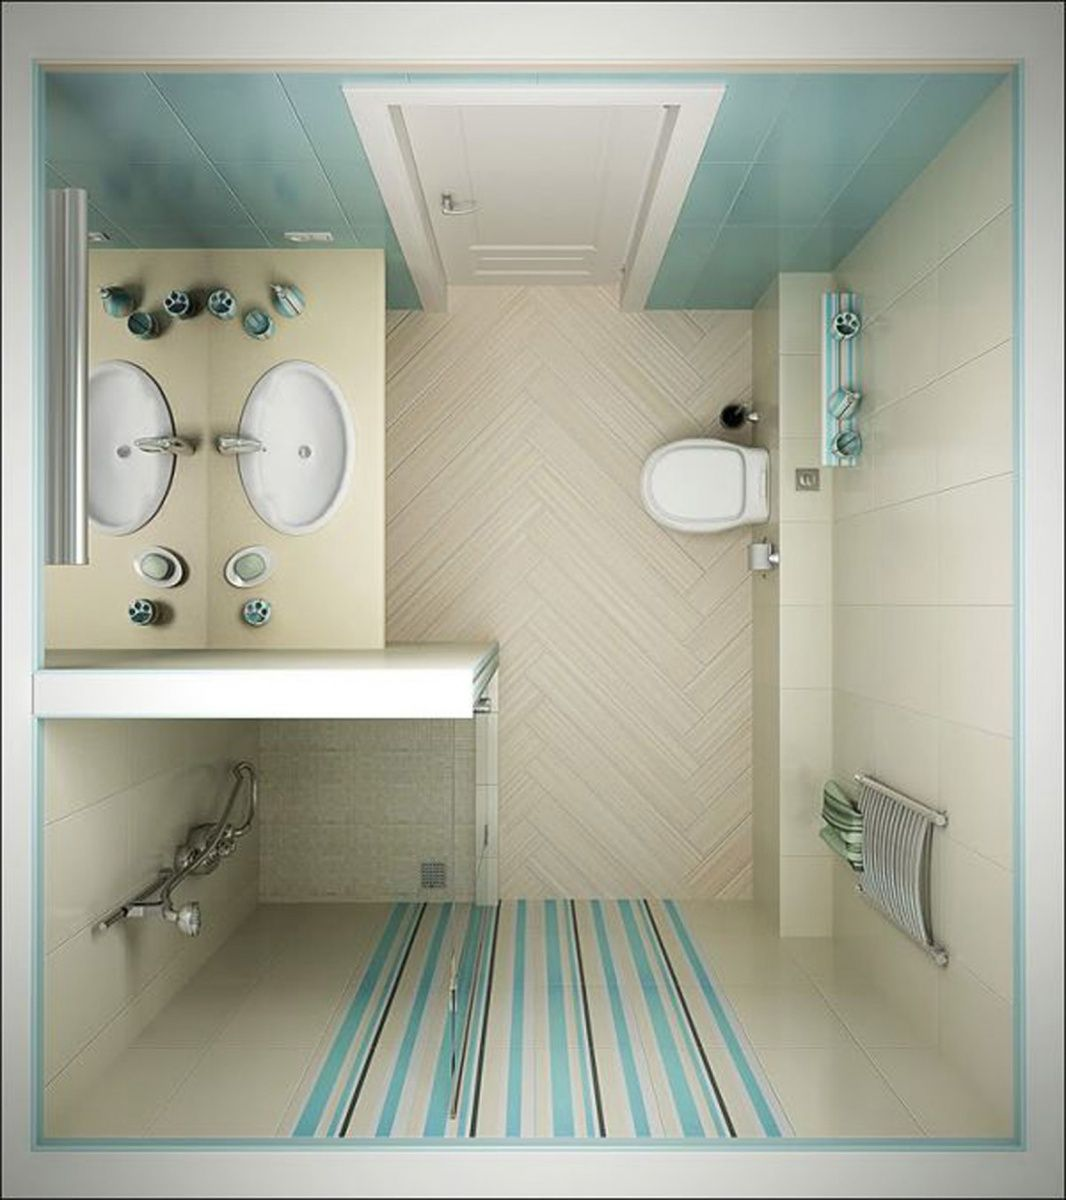 5 Phenomenal Bathroom Tile Combinations: Bathroom Ideas For Small Space Shower Laminated Wood Floor